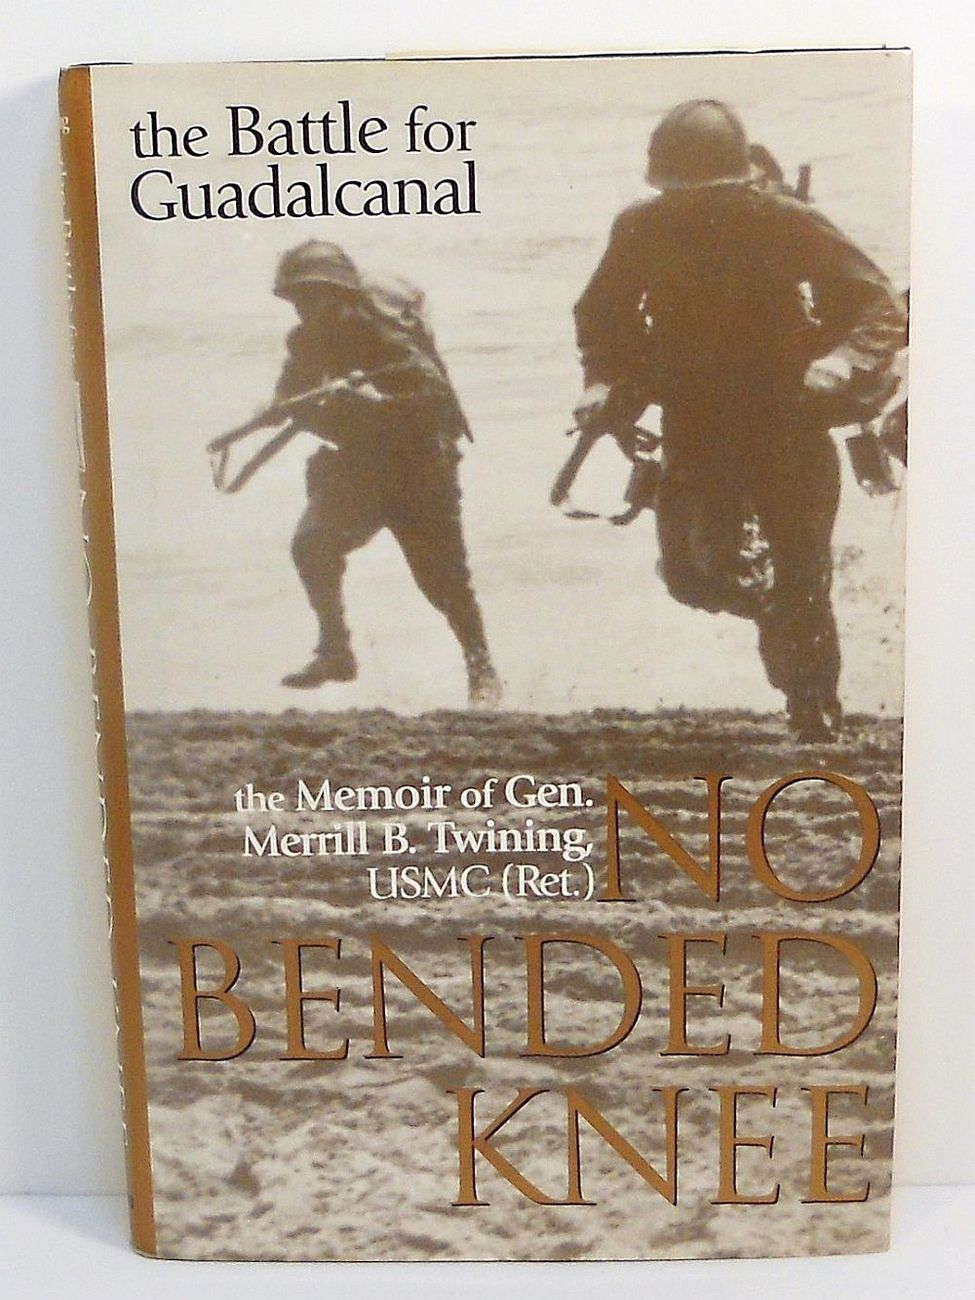 No Bended Knee: The Battle for Guadalcanal by Gen. Merrill B. Twining USMC Ret